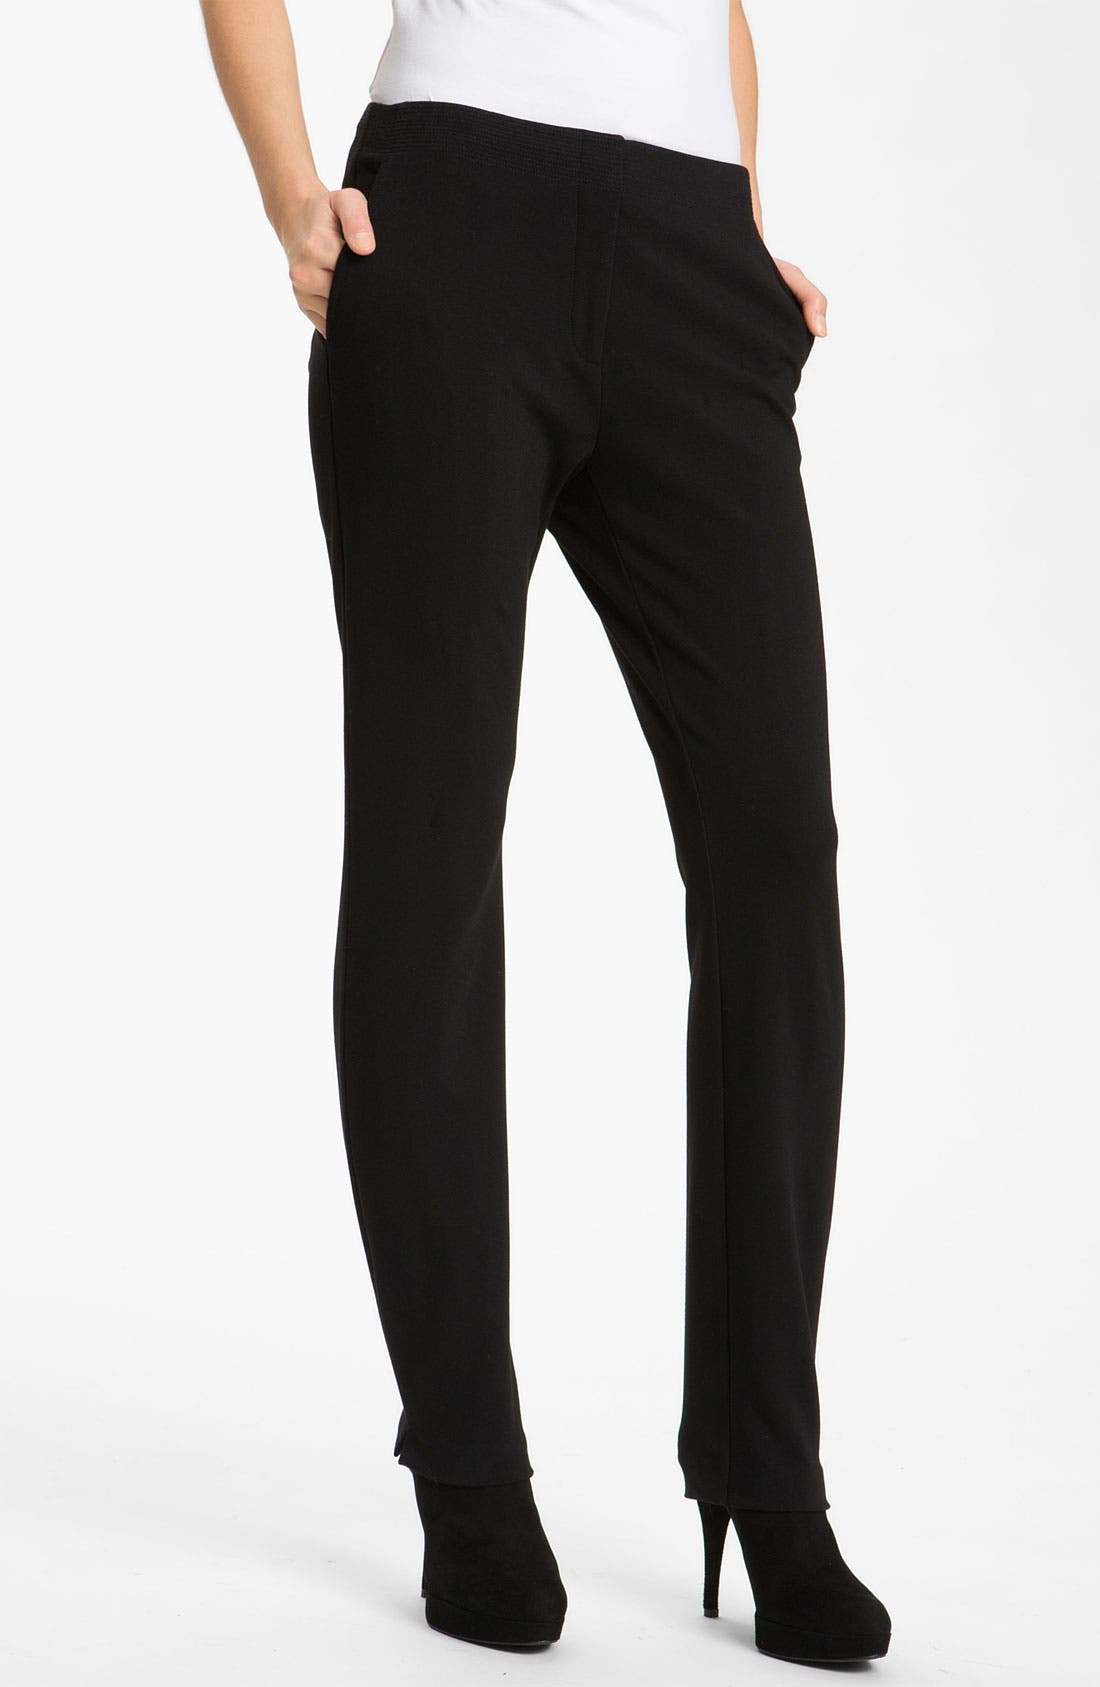 Alternate Image 1 Selected - Eileen Fisher Slim Ponte Knit Pants